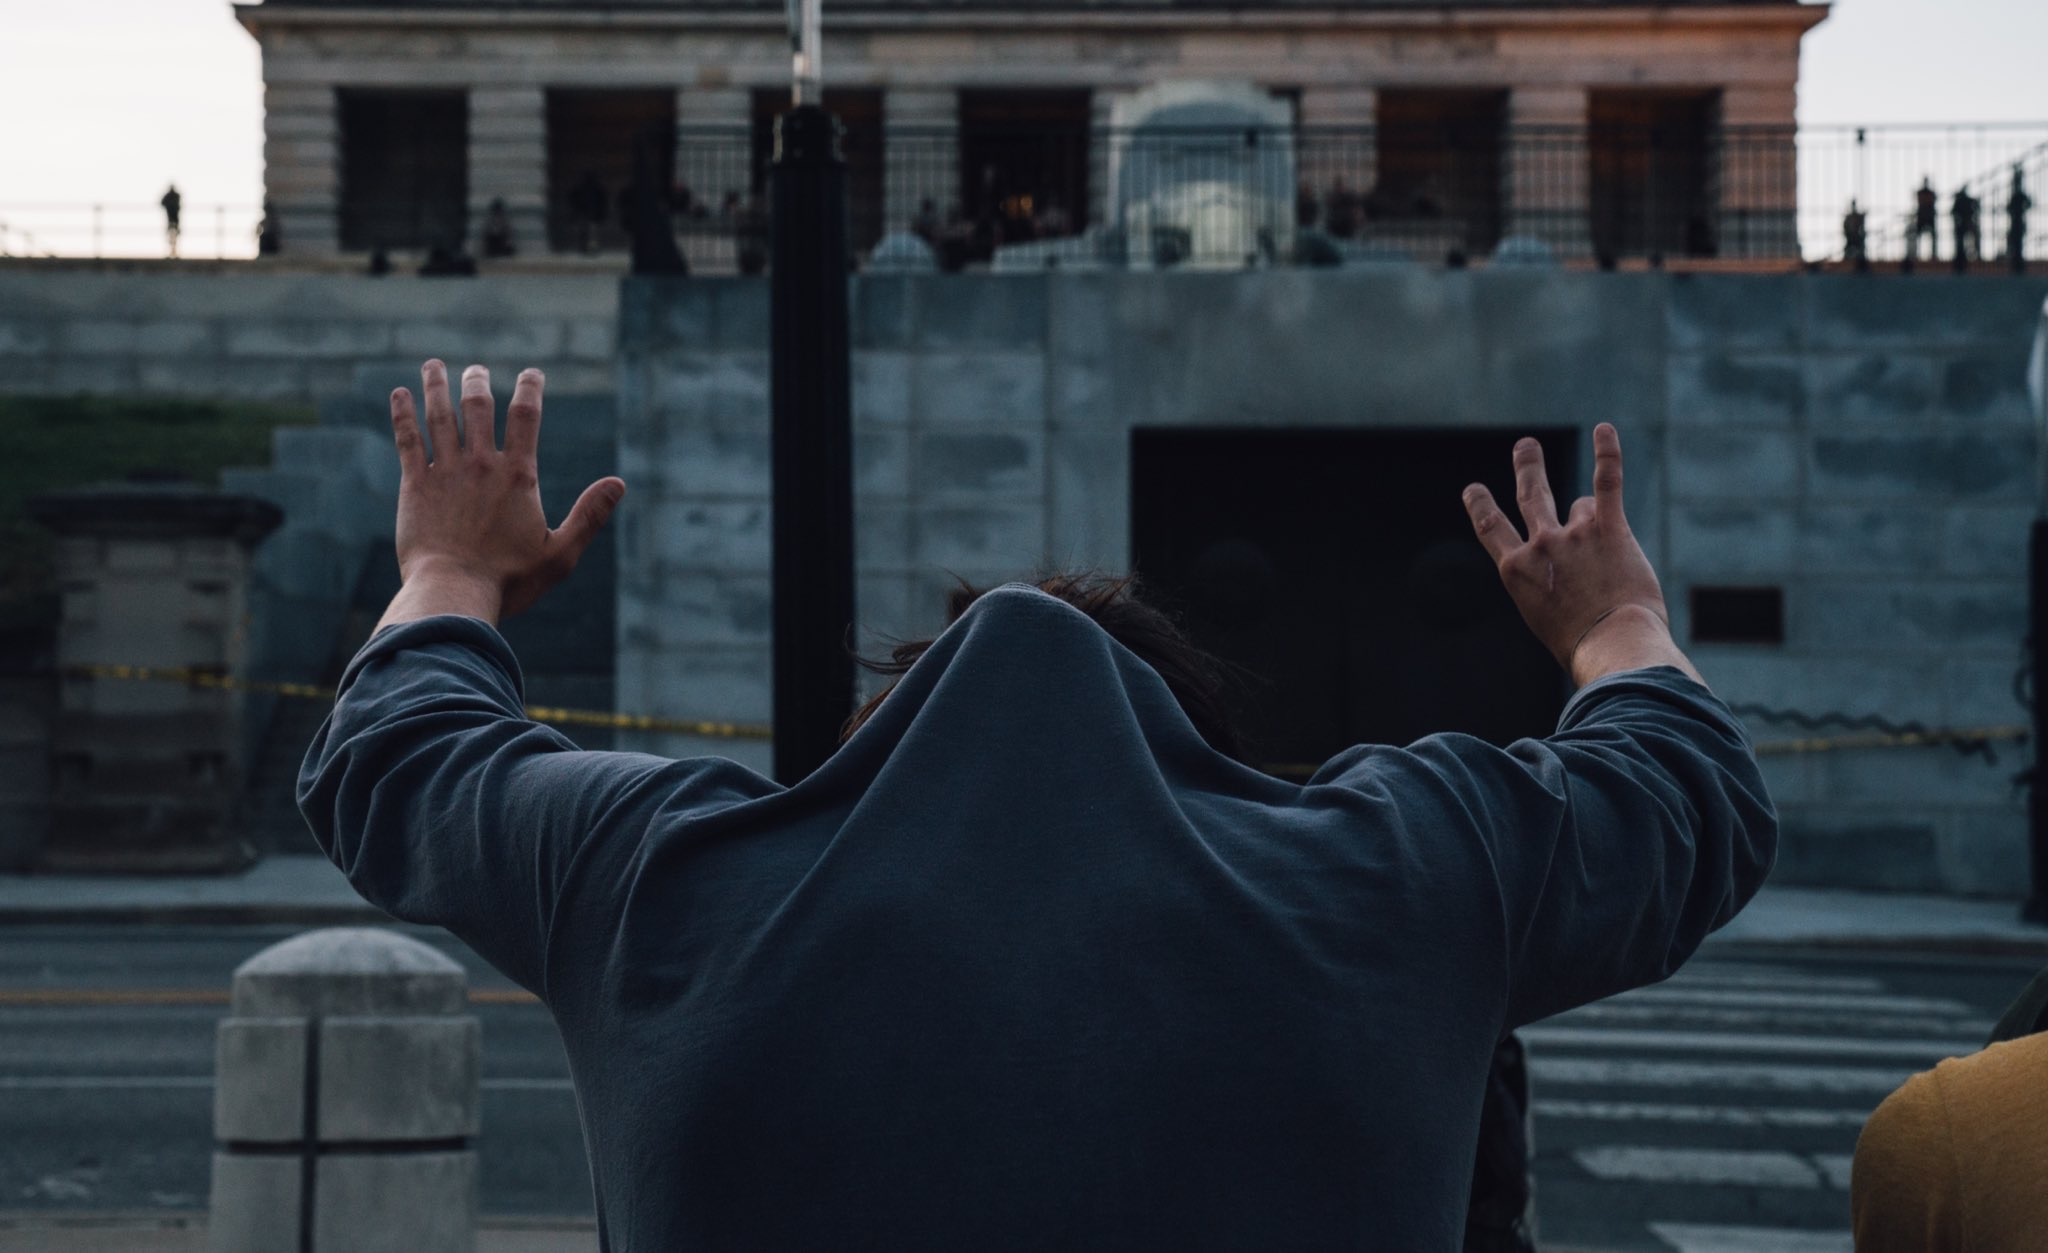 Nashville, Tenn., May 31 - A demonstrator kneels in front of the capitol and holds up eight fingers to signify the amount of time Minneapolis police officer Derek Chauvin kneeled on George Floyd's neck. (Photo: Alex Kent)